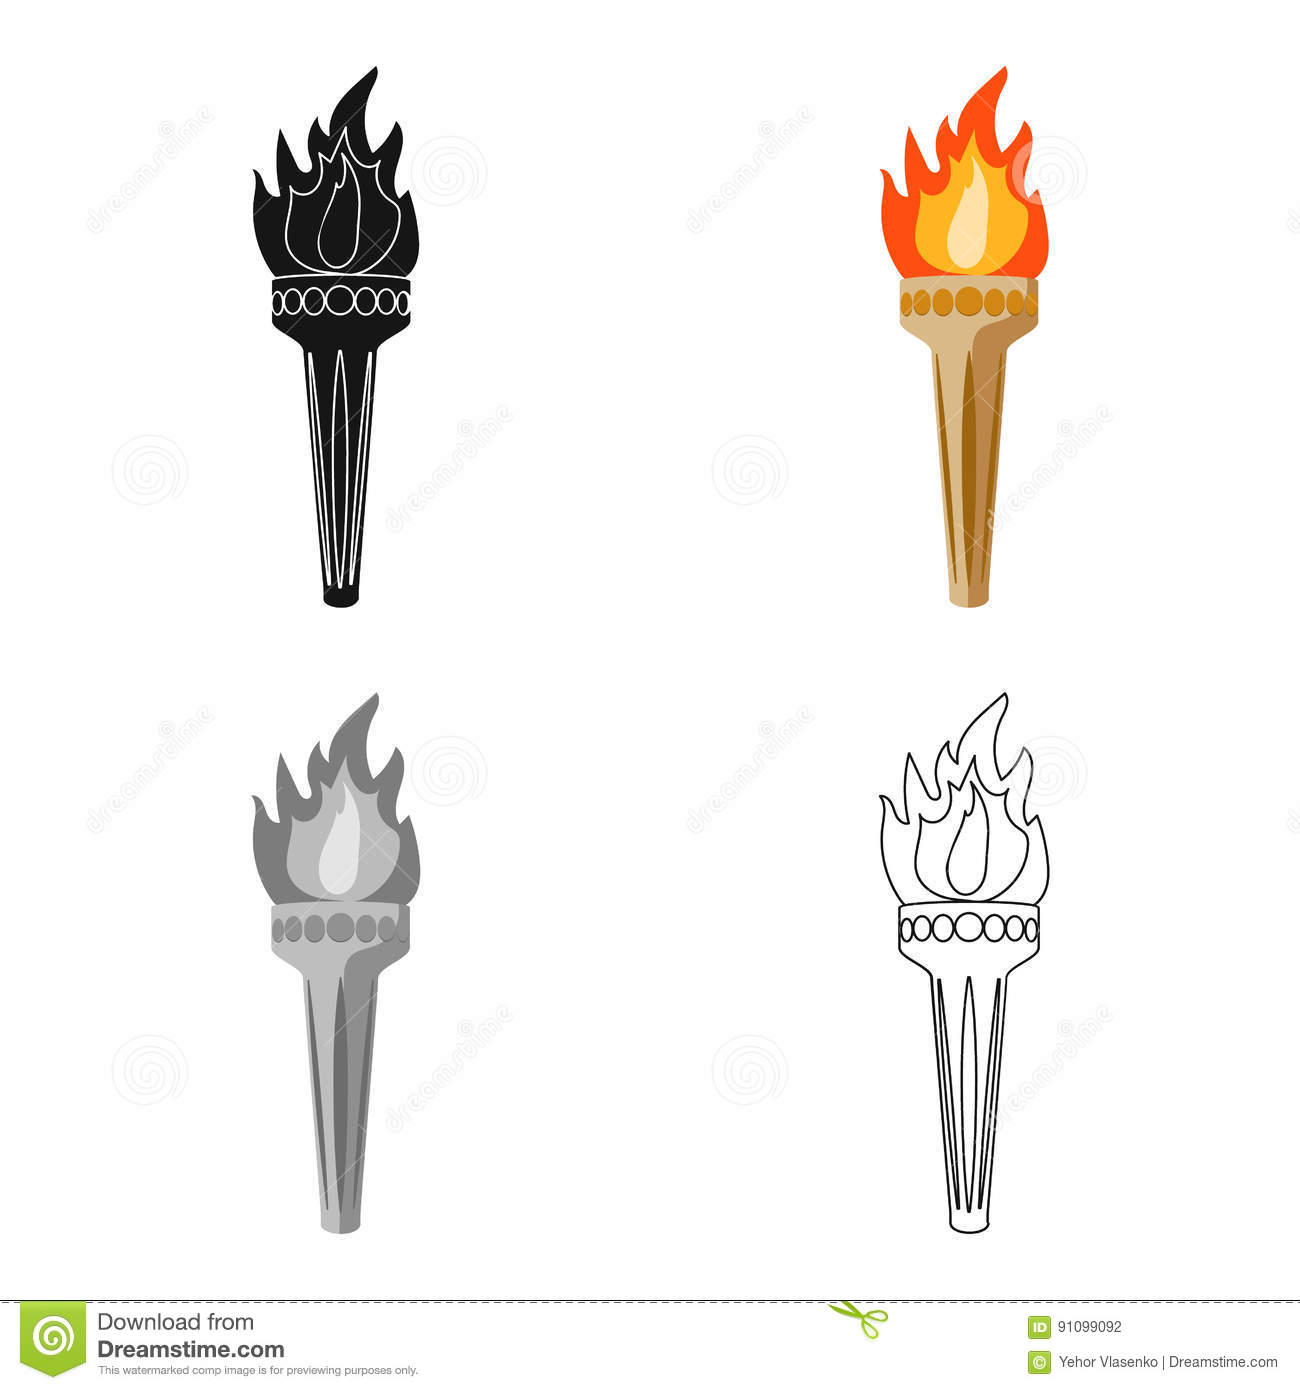 Olympic Torch Icon In Cartoon Style Isolated On White